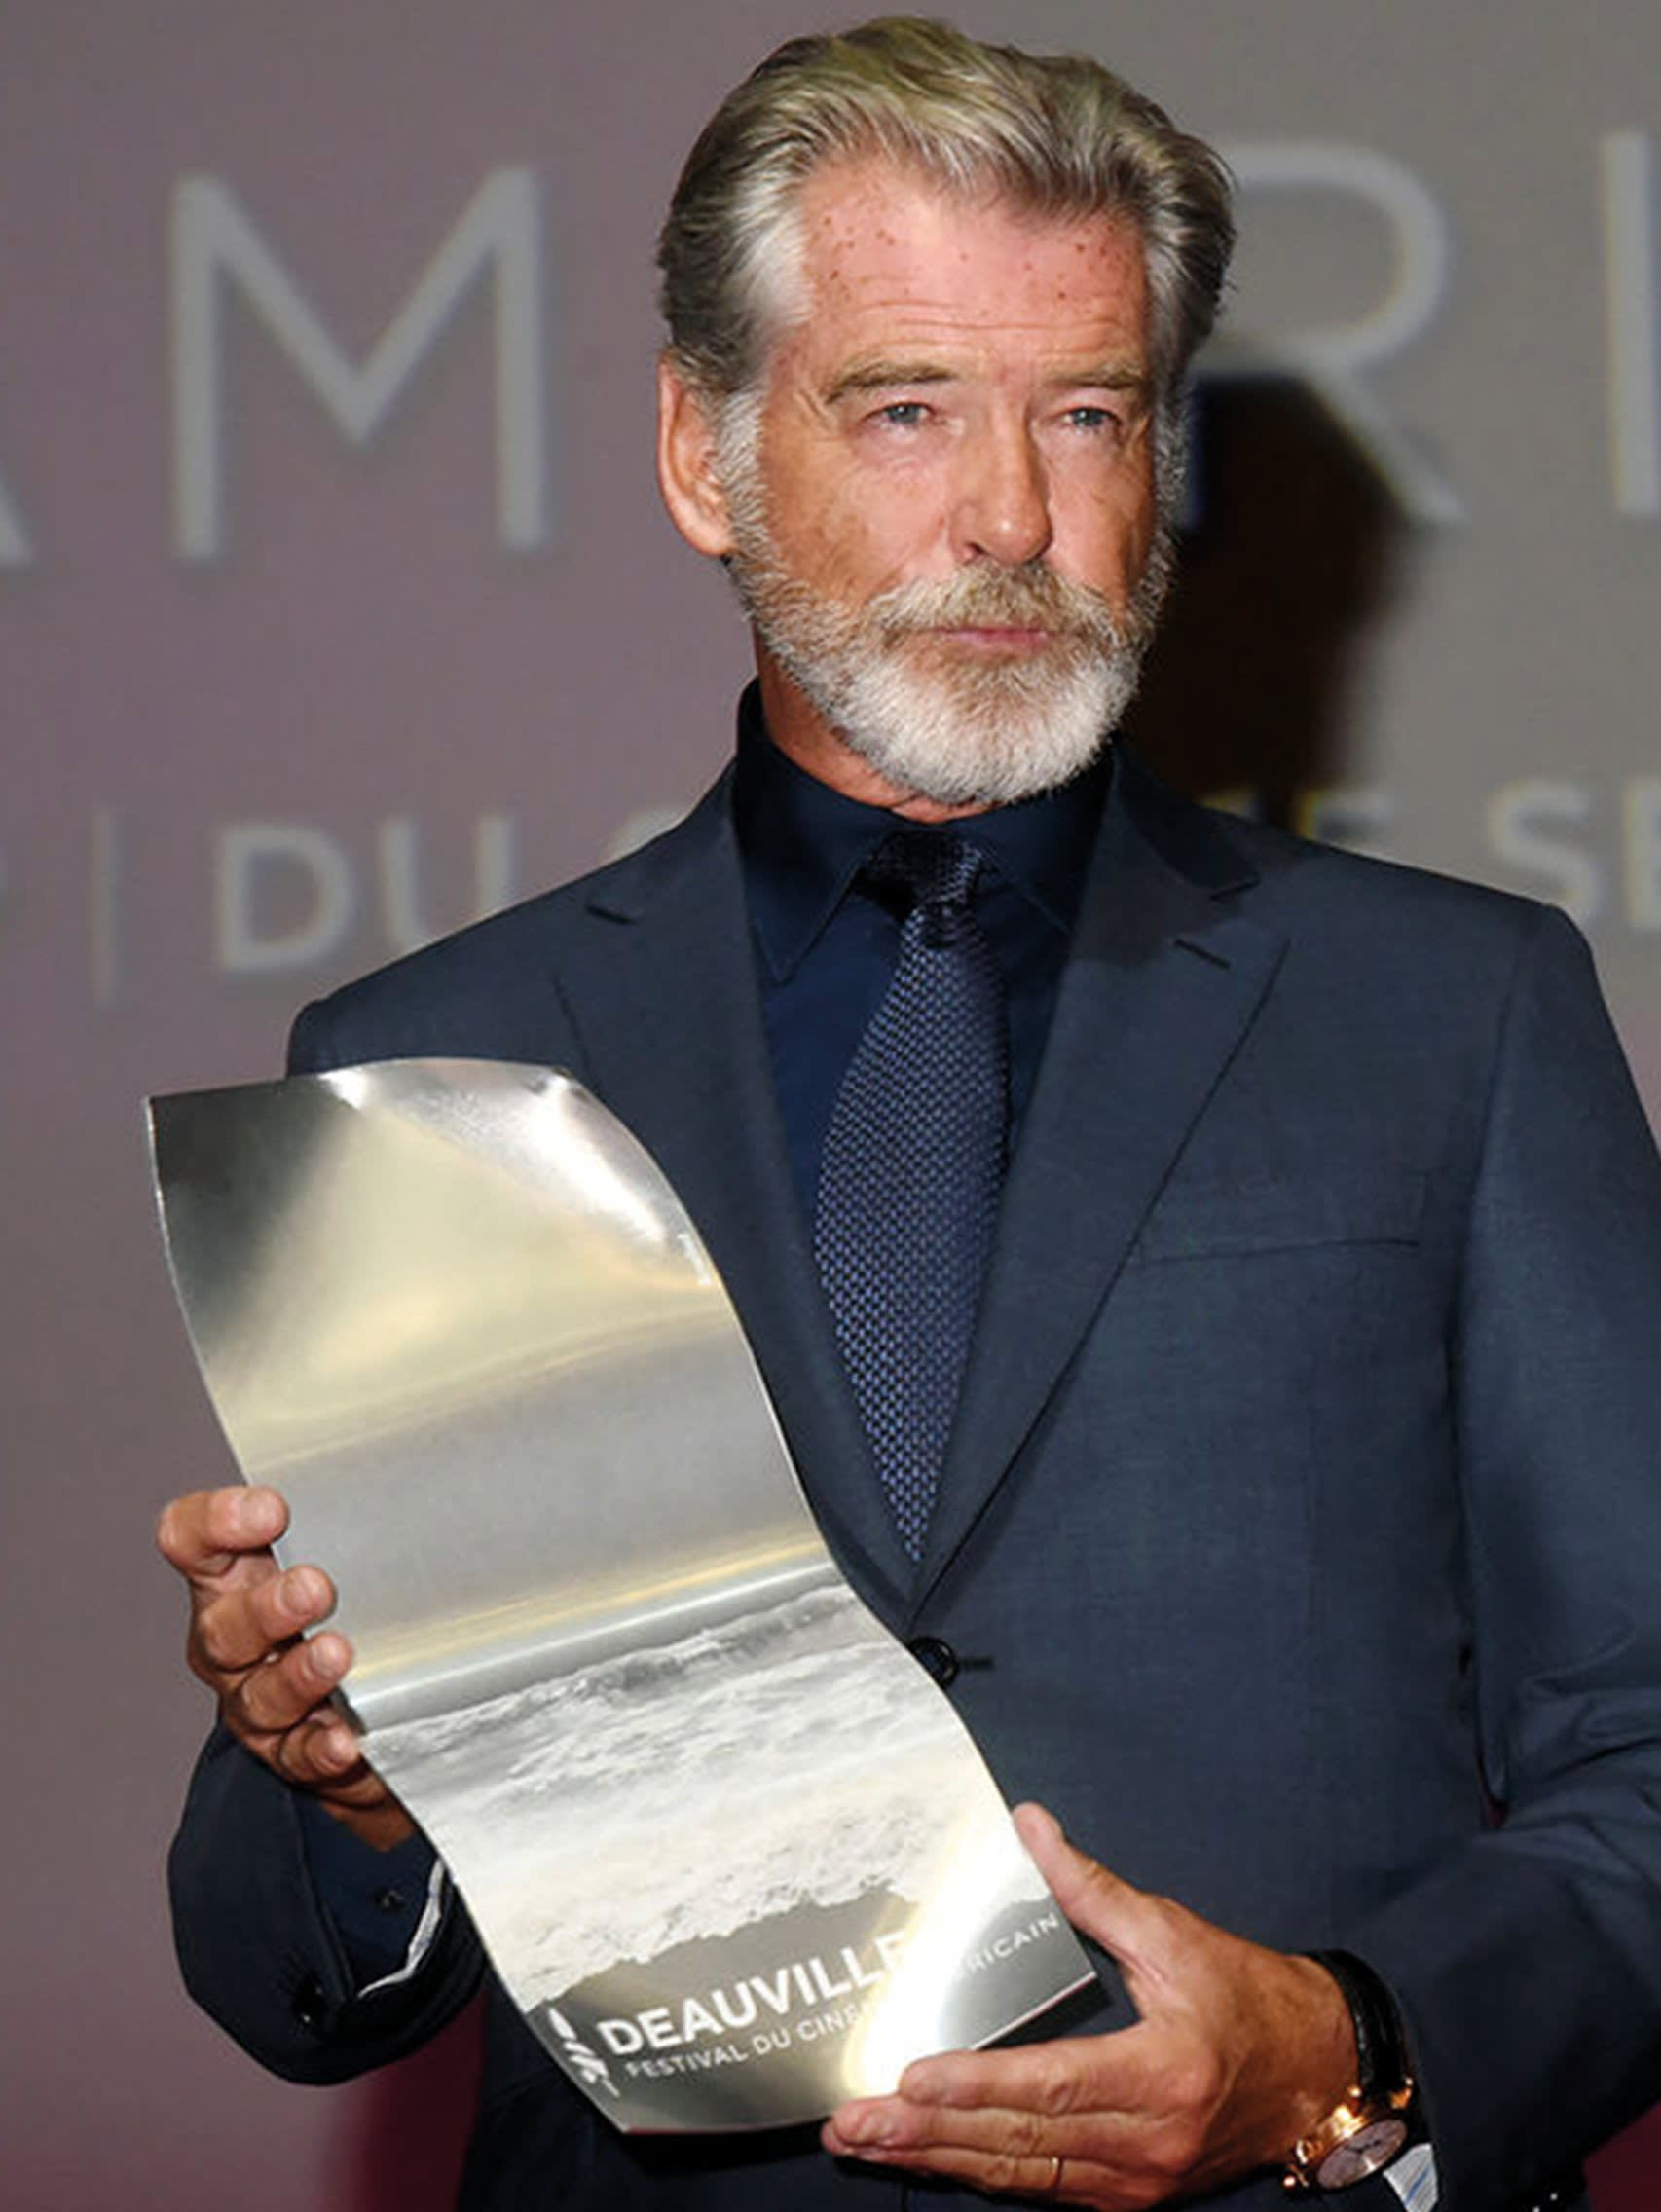 Pierce Brosnan wearing a Brioni bespoke blue suit